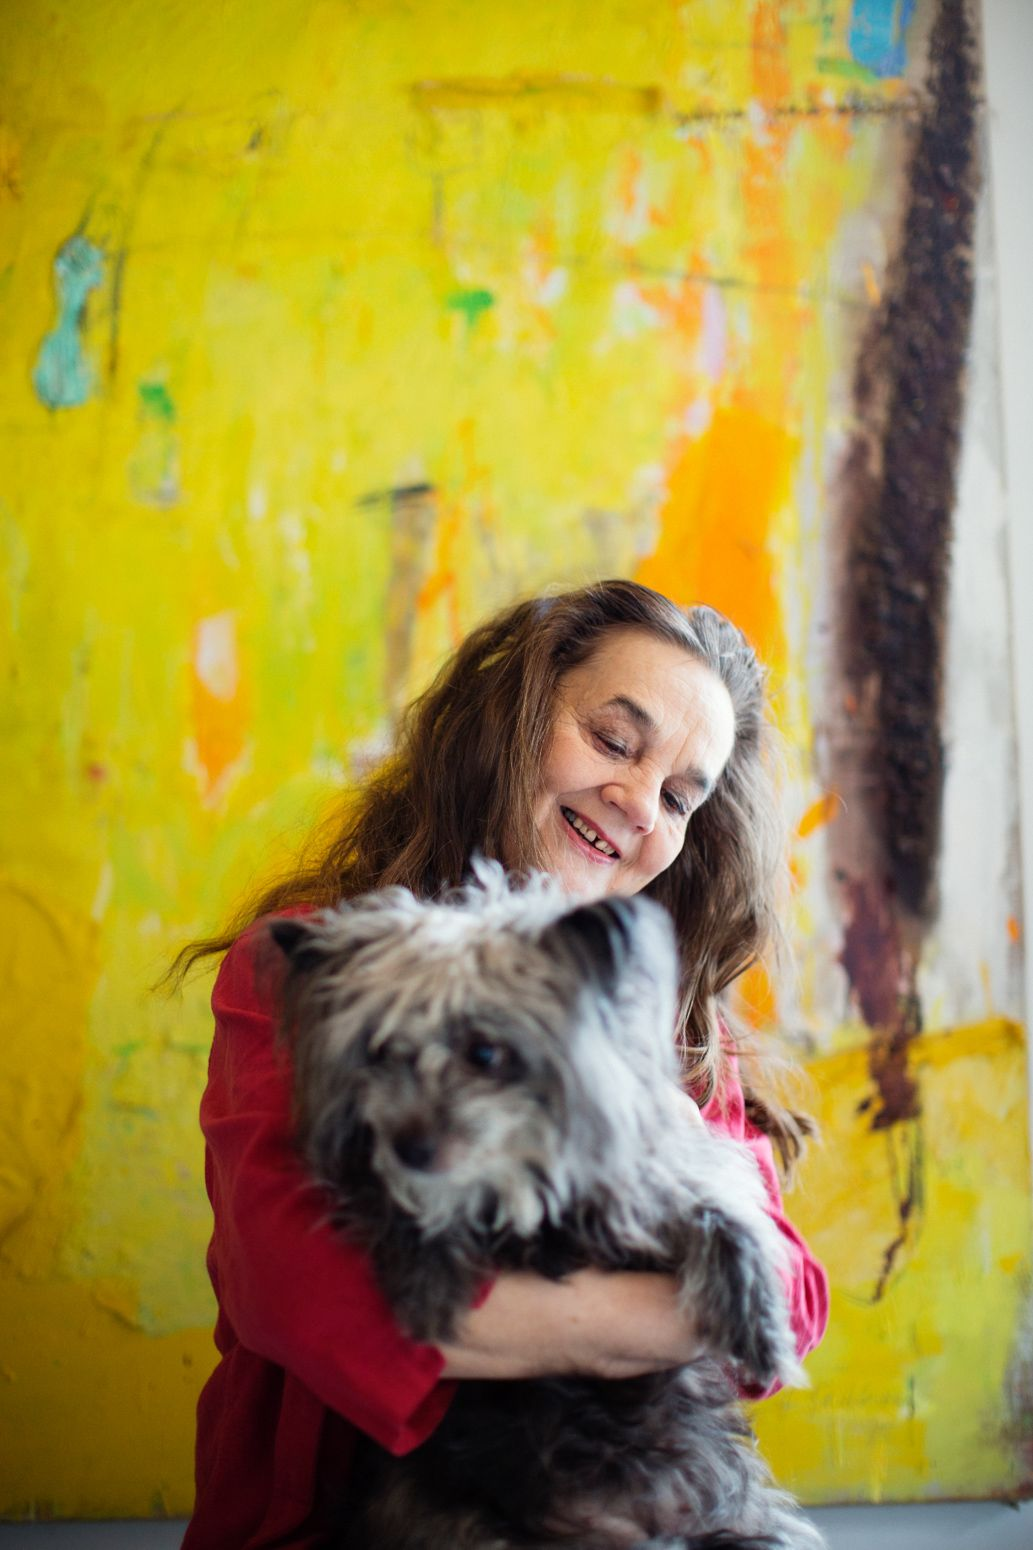 Happy. Portrait. Yellow Wall. Rugged Dog. Woman. Red Shirt. Photo by Pia Inberg.